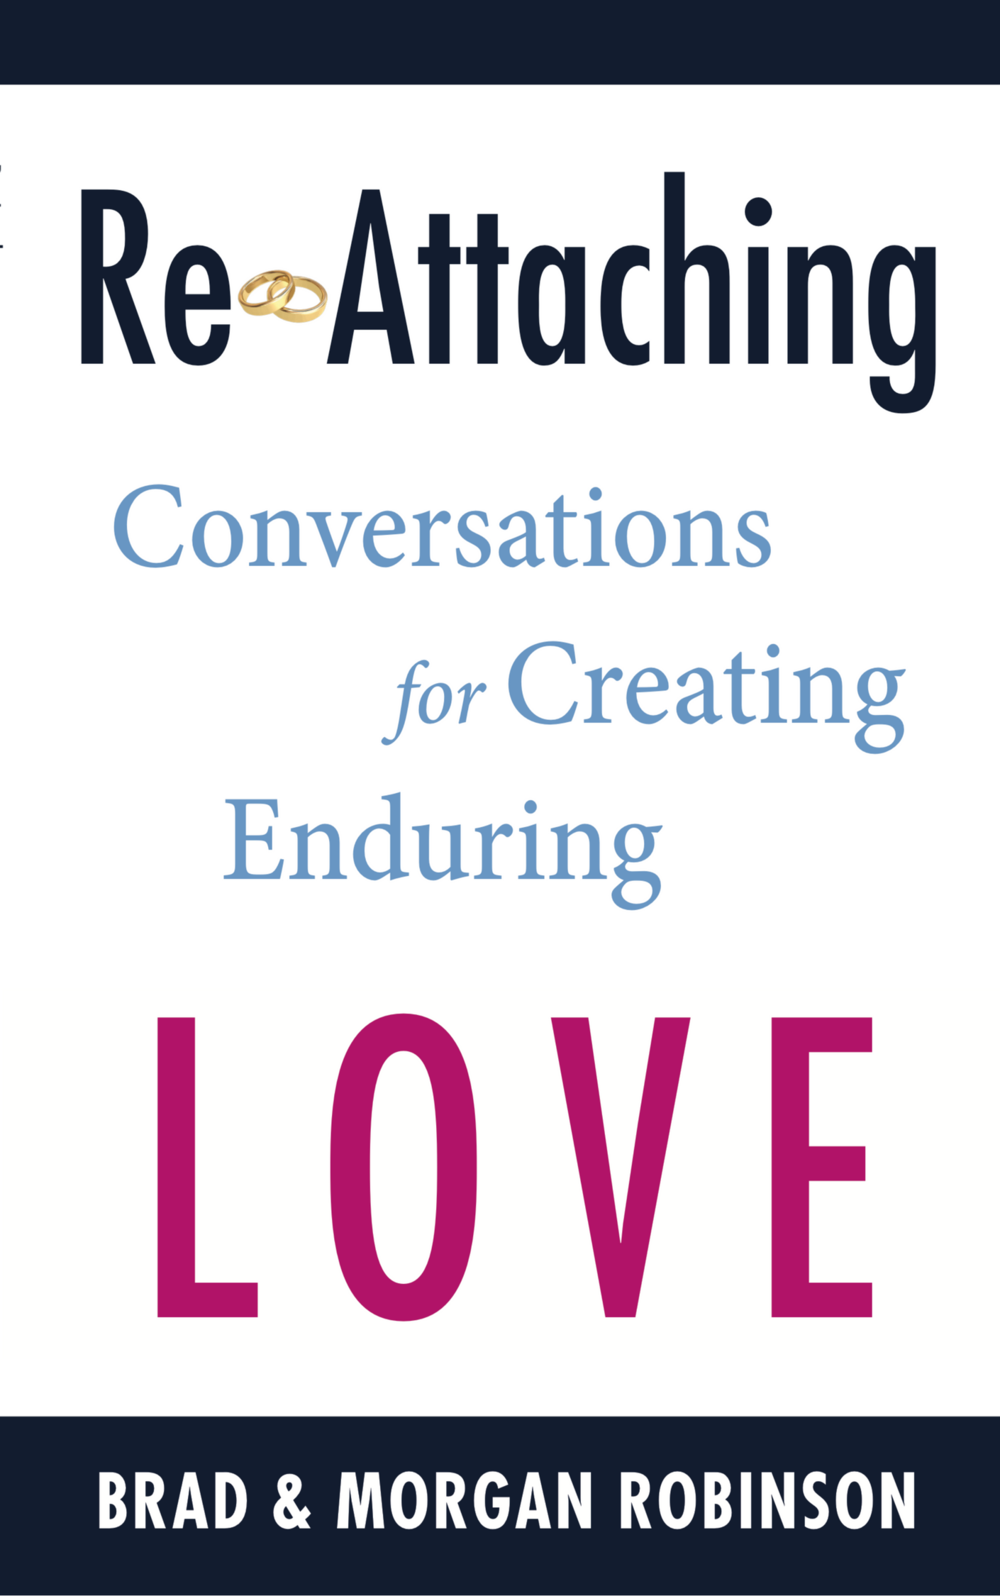 Order Your Copy Today! - Do you feel lost in your relationship? Maybe communication has suffered and you don't feel close emotionally or physically to your spouse? Do you feel that you cannot trust your partner? Has there been infidelity?If you feel that your relationship won't last or won't be happy for the long-haul if you leave things as they are, read this book. You will find that re-attaching to your spouse and rebuilding the bond that's suffered is very possible with the right help. Take this first step and we'll help you decide what to do next.Brad Robinson, LMFT is an international expert in affair recovery. He and his wife along with their team of therapists work with couples to completely heal after relationship wounds have wrecked their relationship.